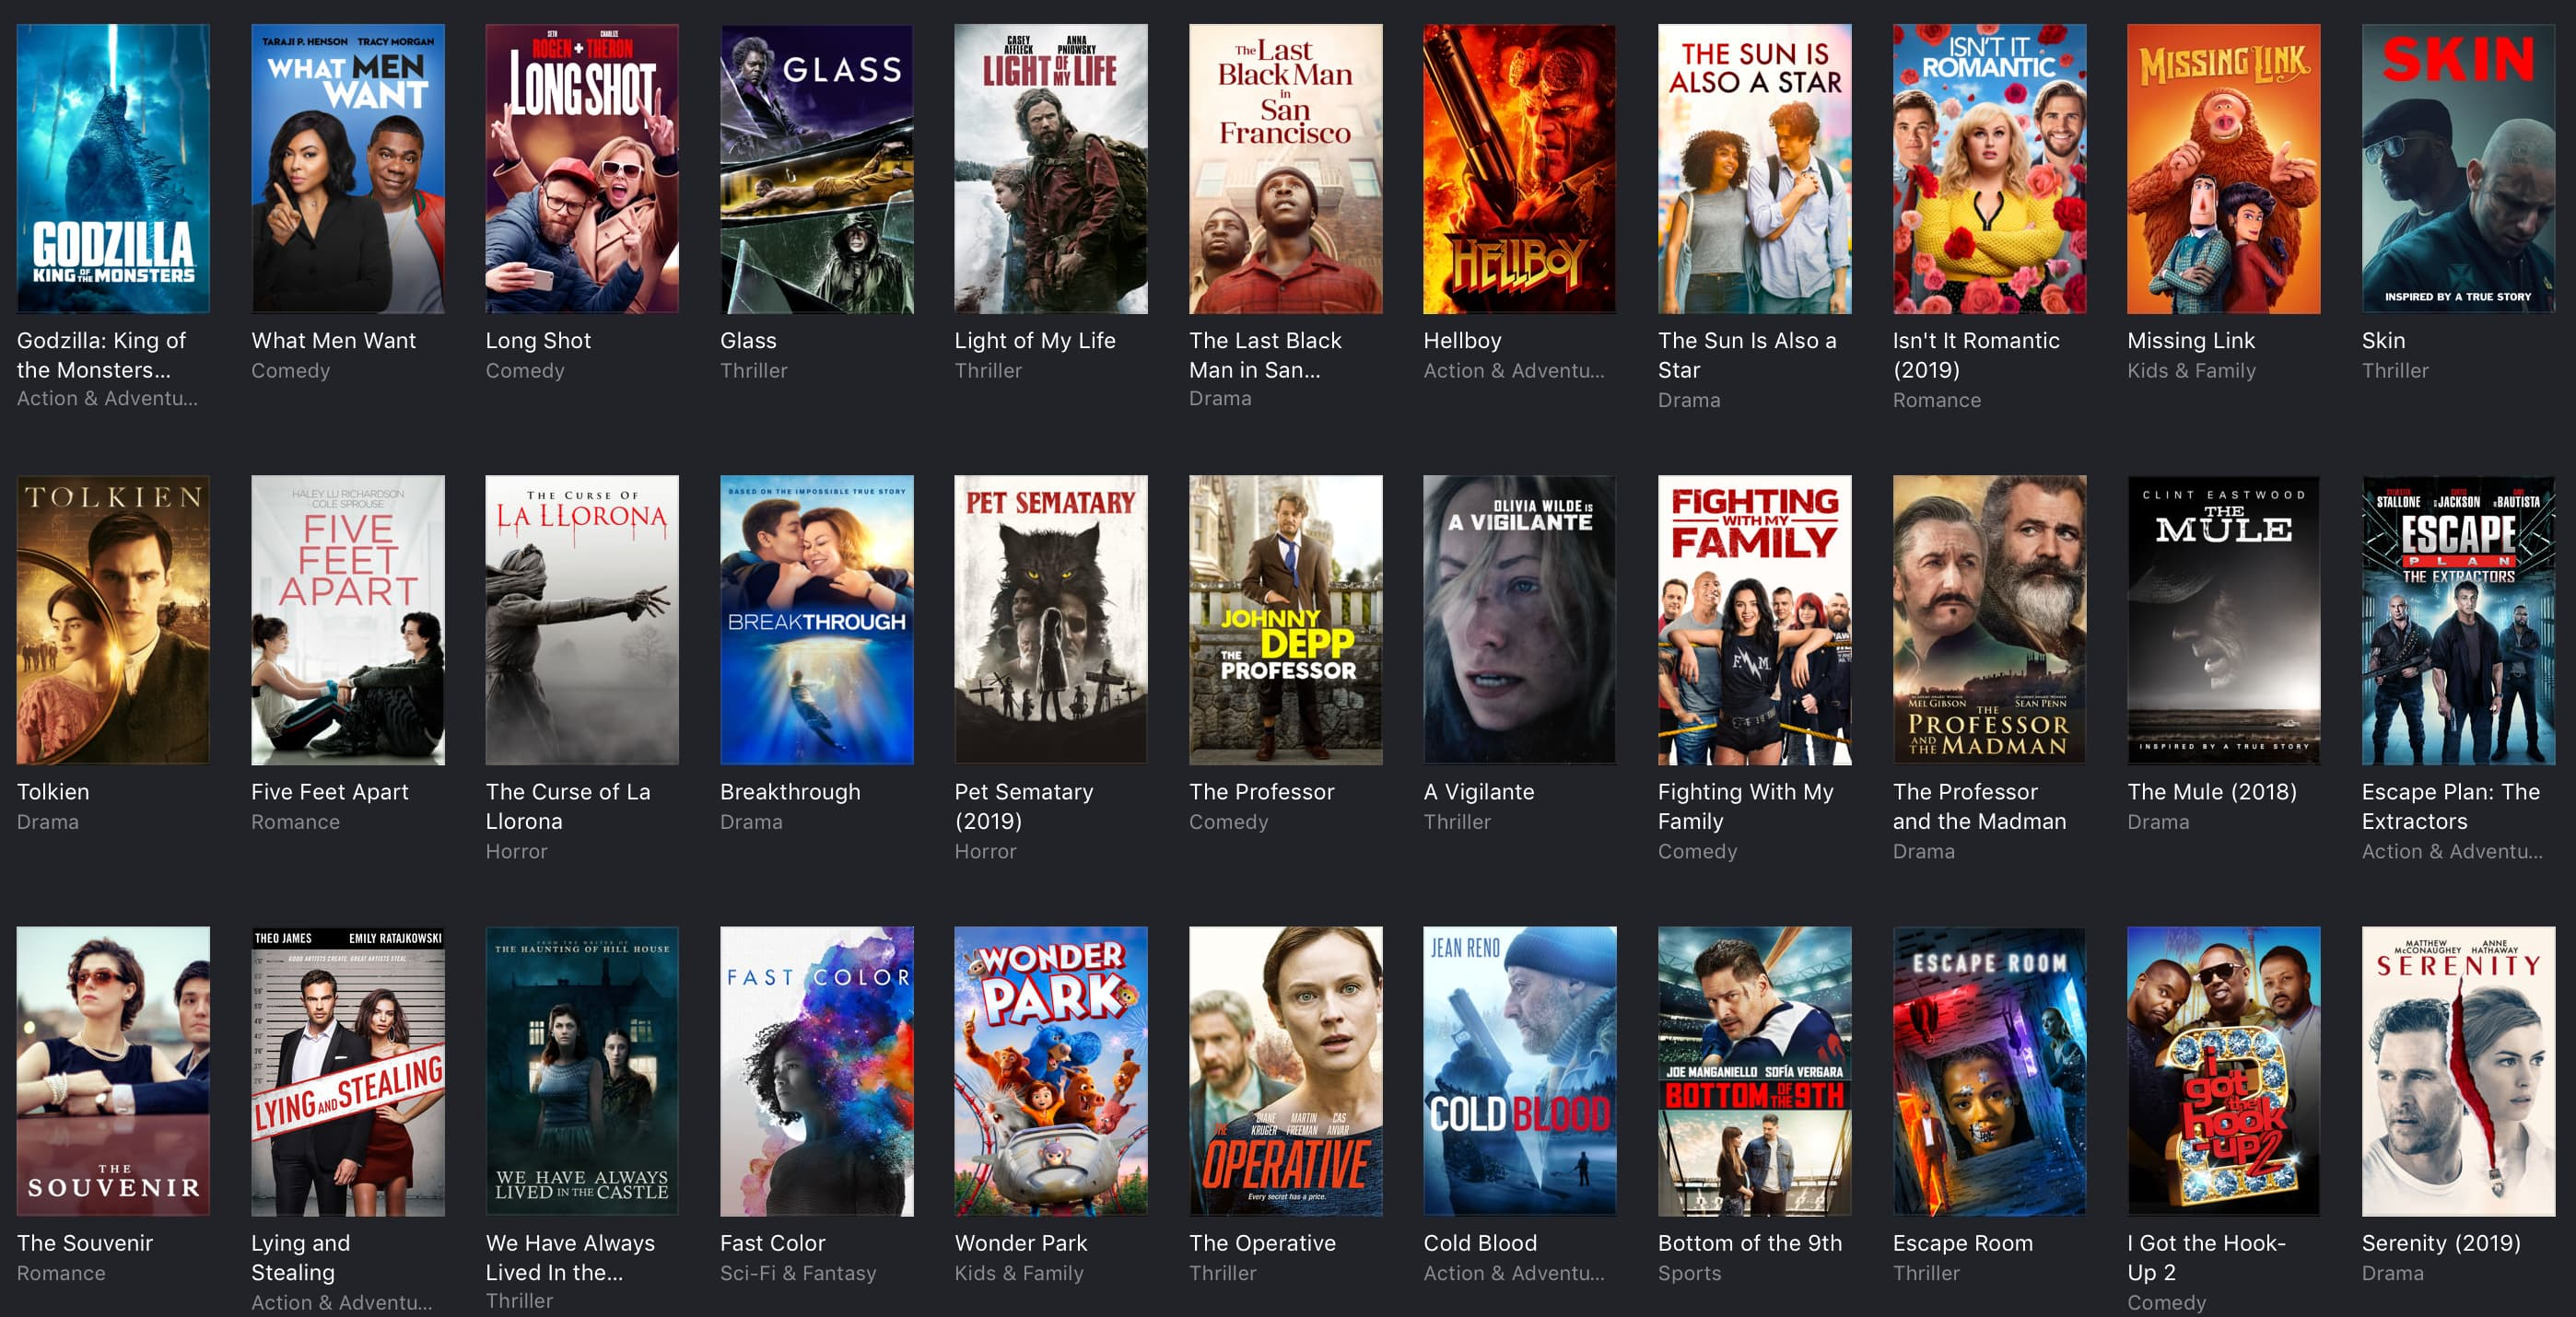 iTunes movie deals: Hellboy and Glass $10, Dazed and Confused $8, Kill Bill $5, and more